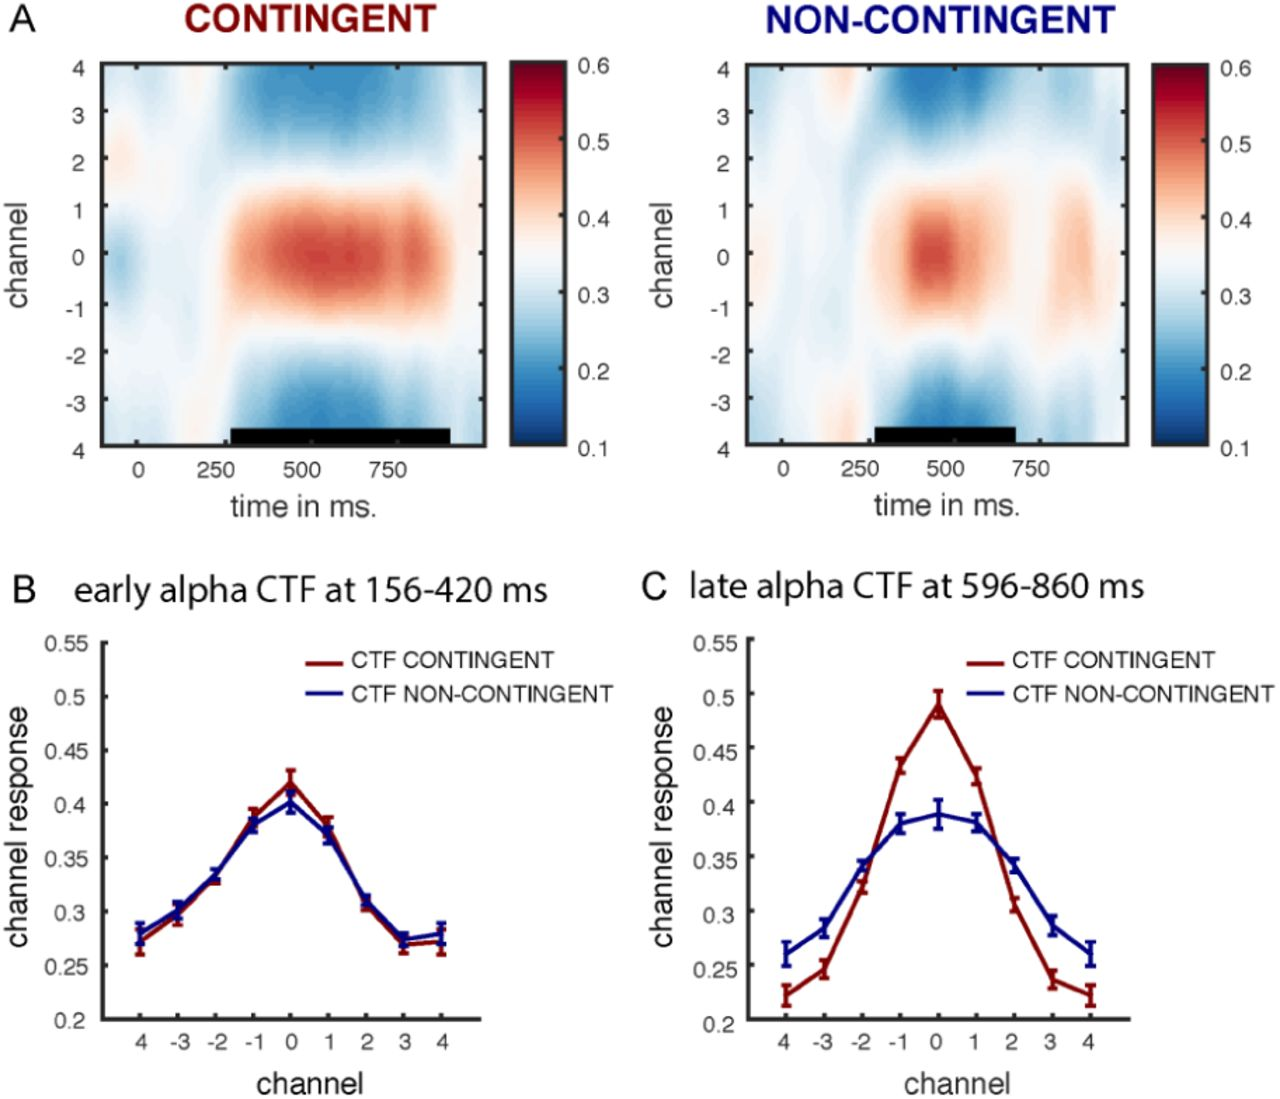 Multivariate analysis of EEG activity indexes contingent and